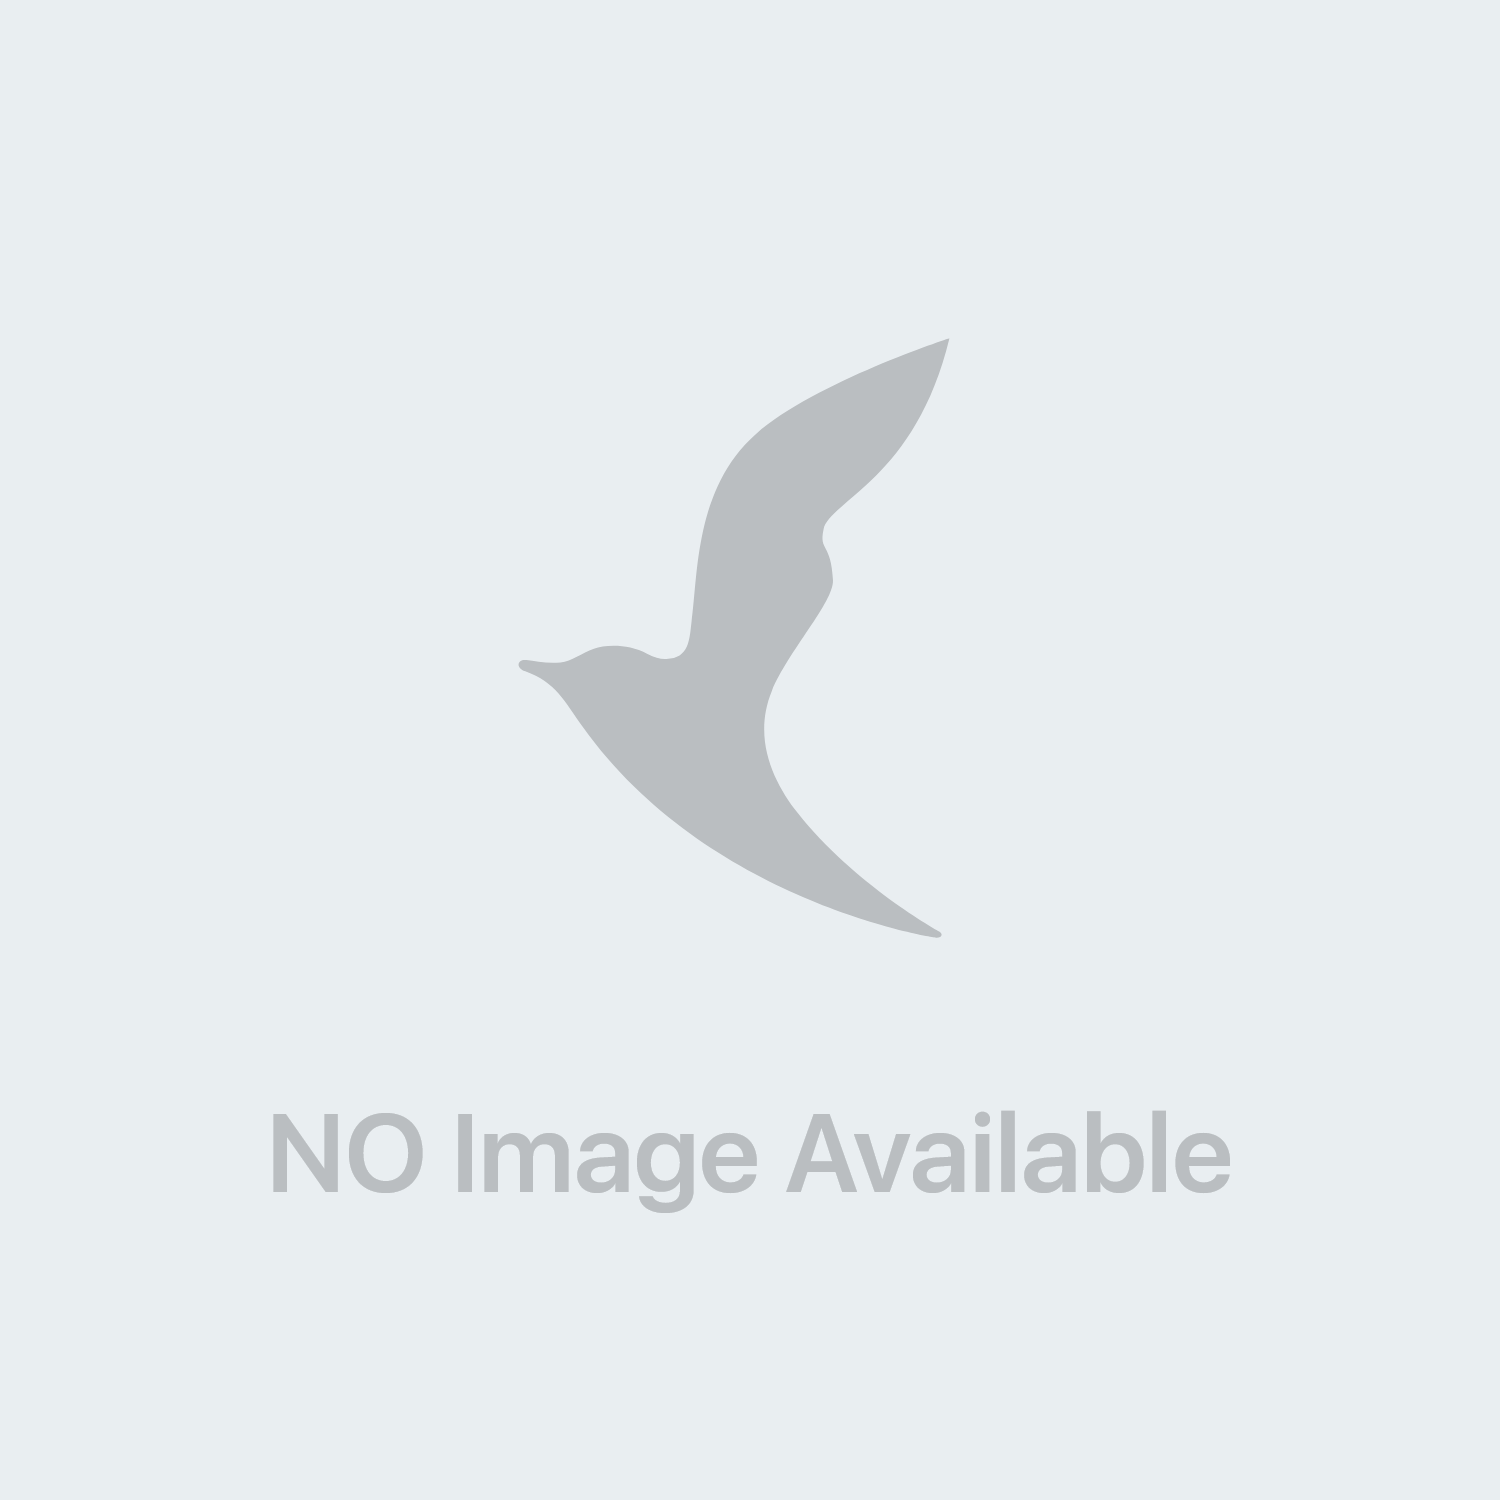 BellaOggi Feel Glamour Fard Illuminante Effetto Seta Rose n°004